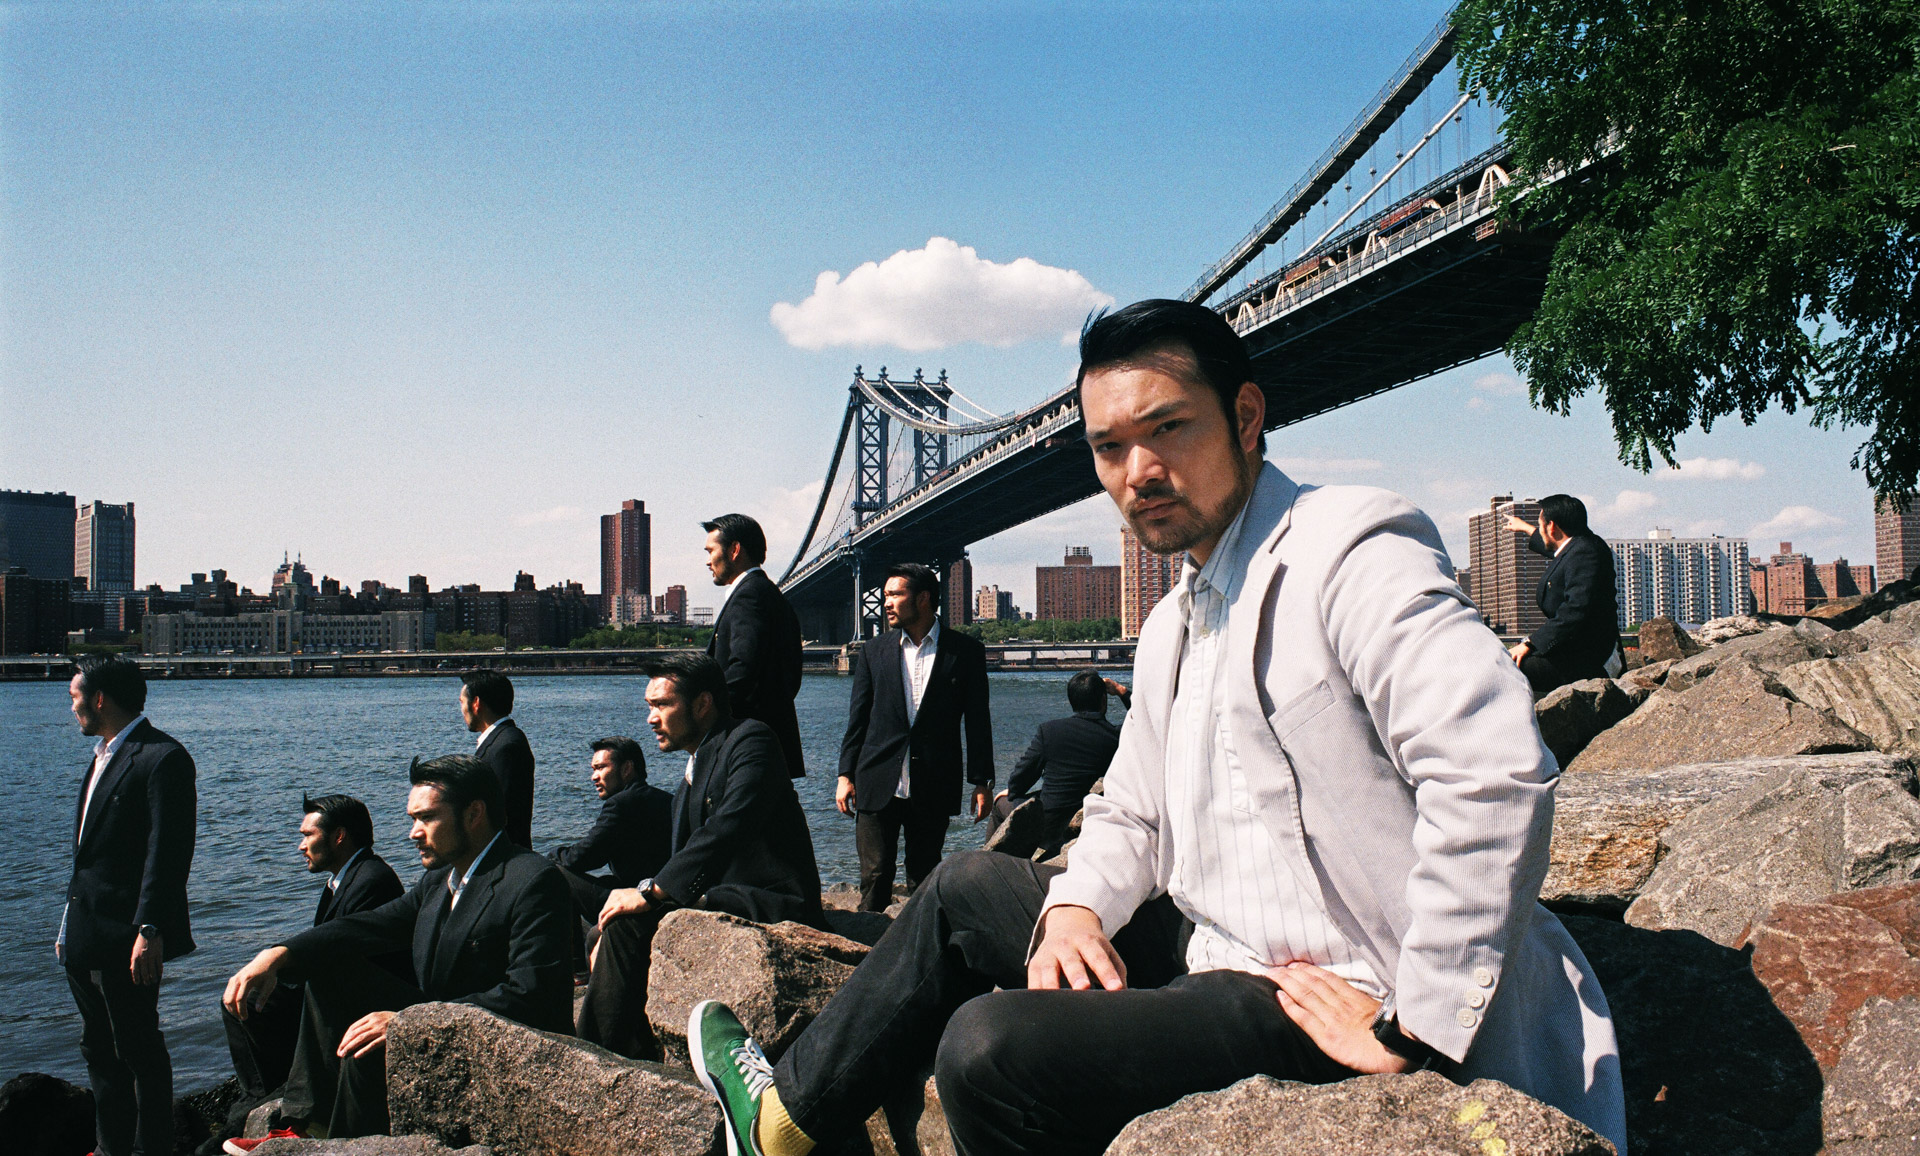 A group of Asian men in Dark suits on the rocks by a river, same asian in a white suit looking into the camera.